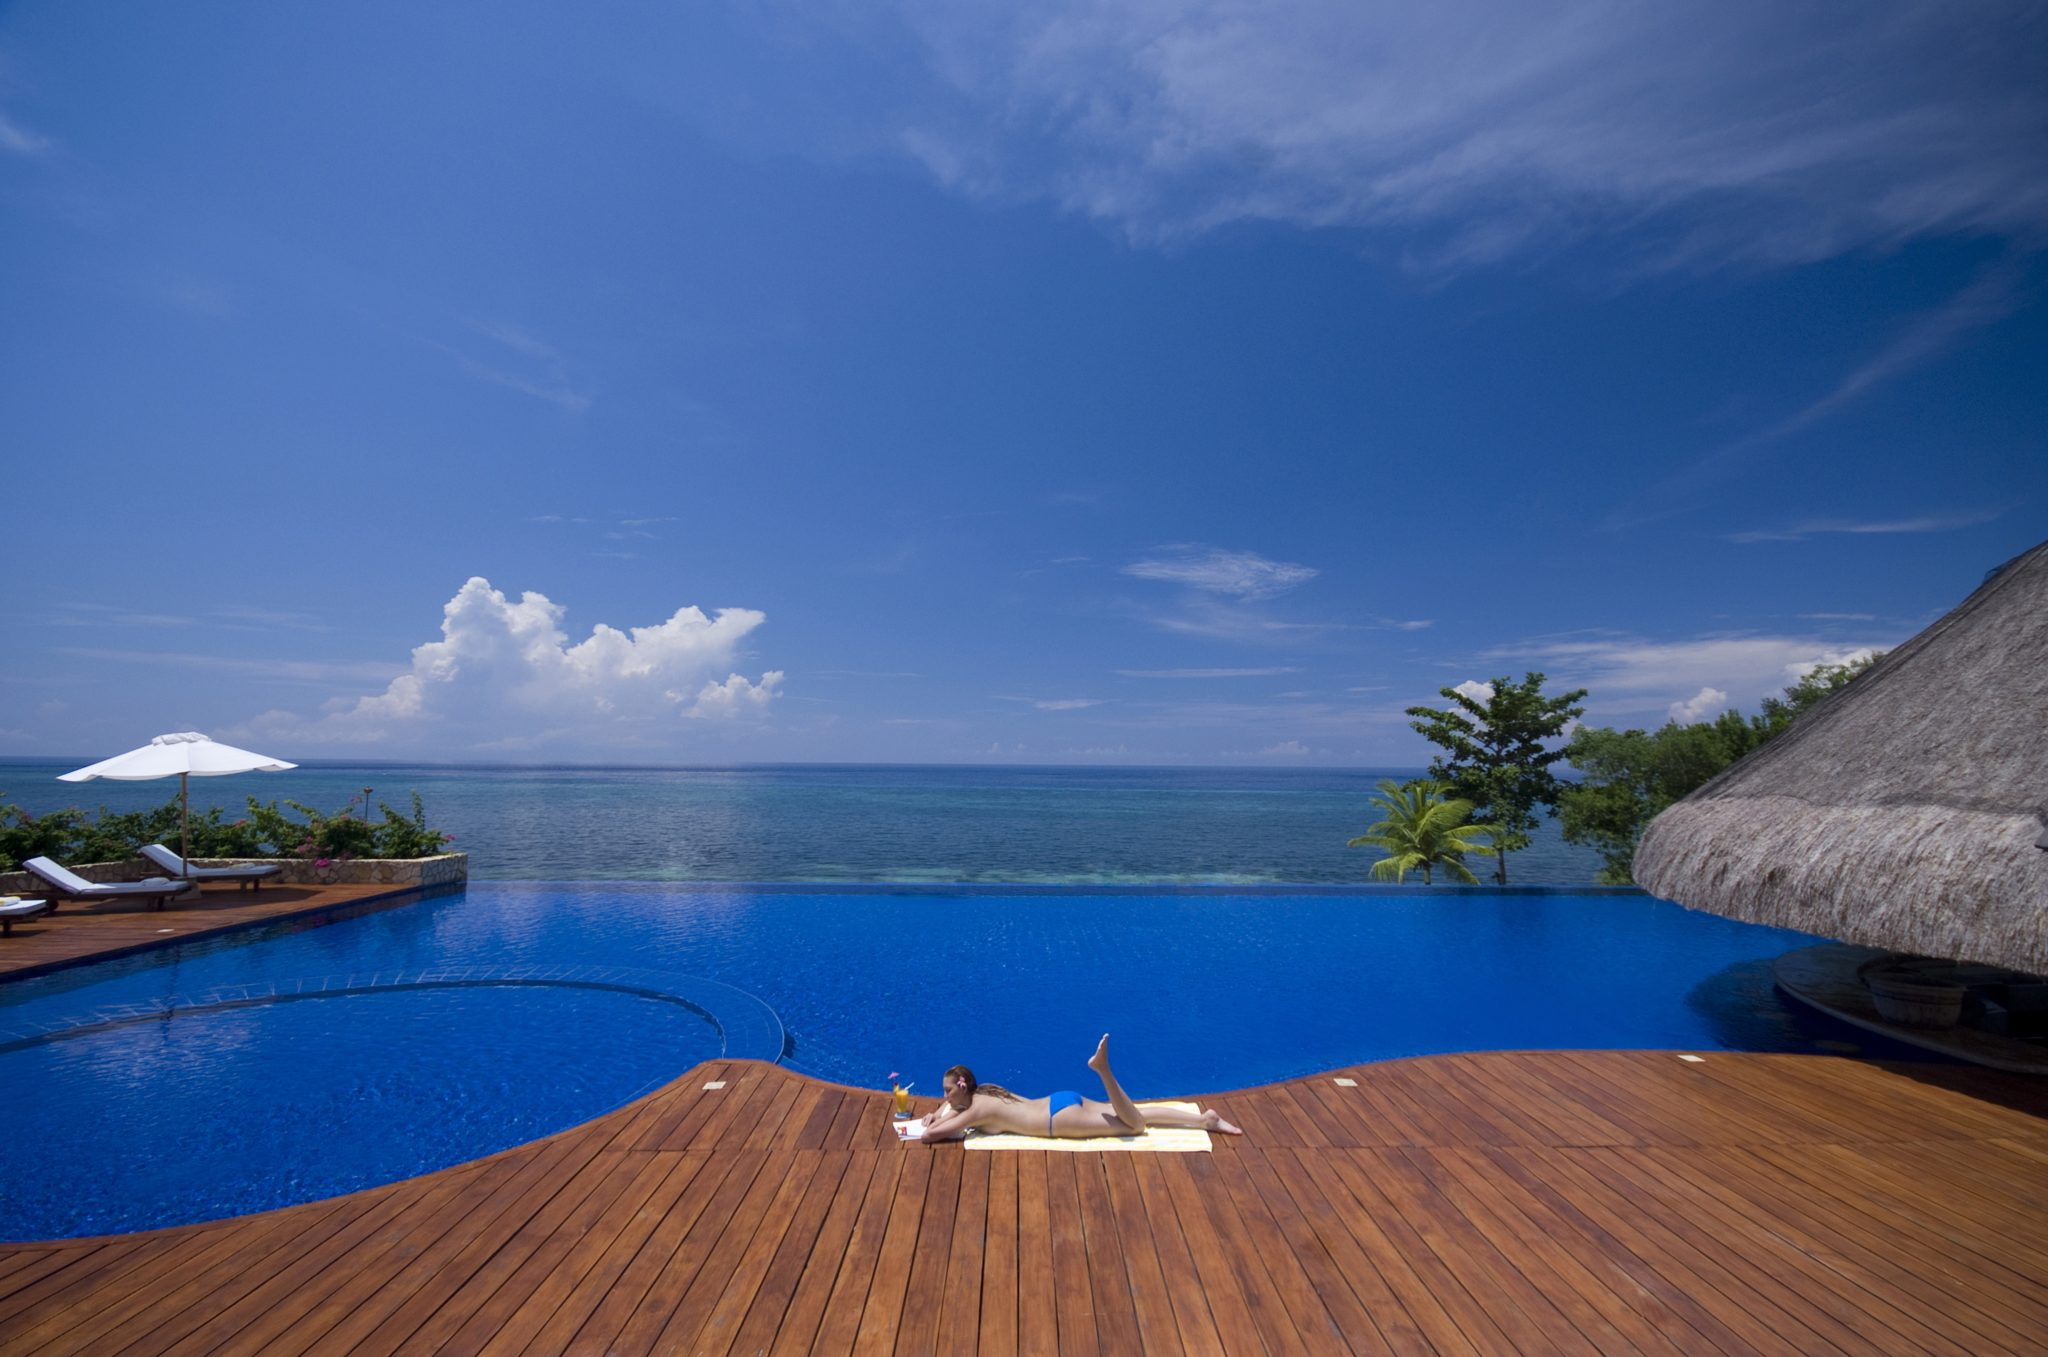 Eskaya beach resort spa philippines infinity pools - Infinity pool europe ...